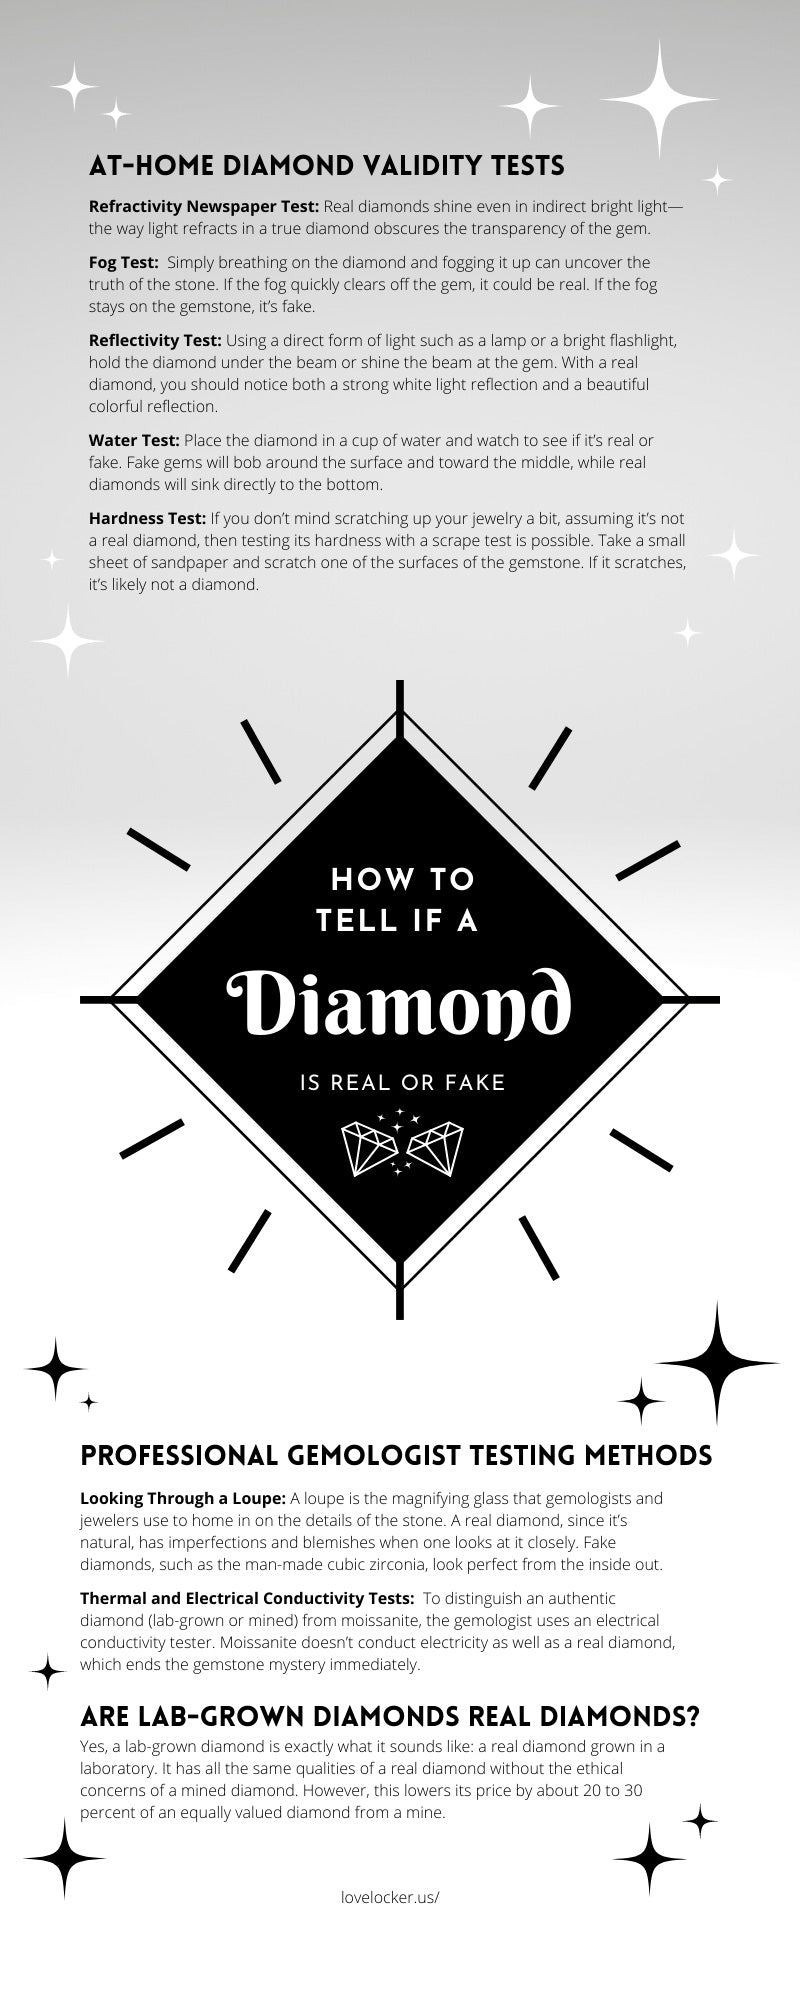 How To Tell If a Diamond Is Real or Fake